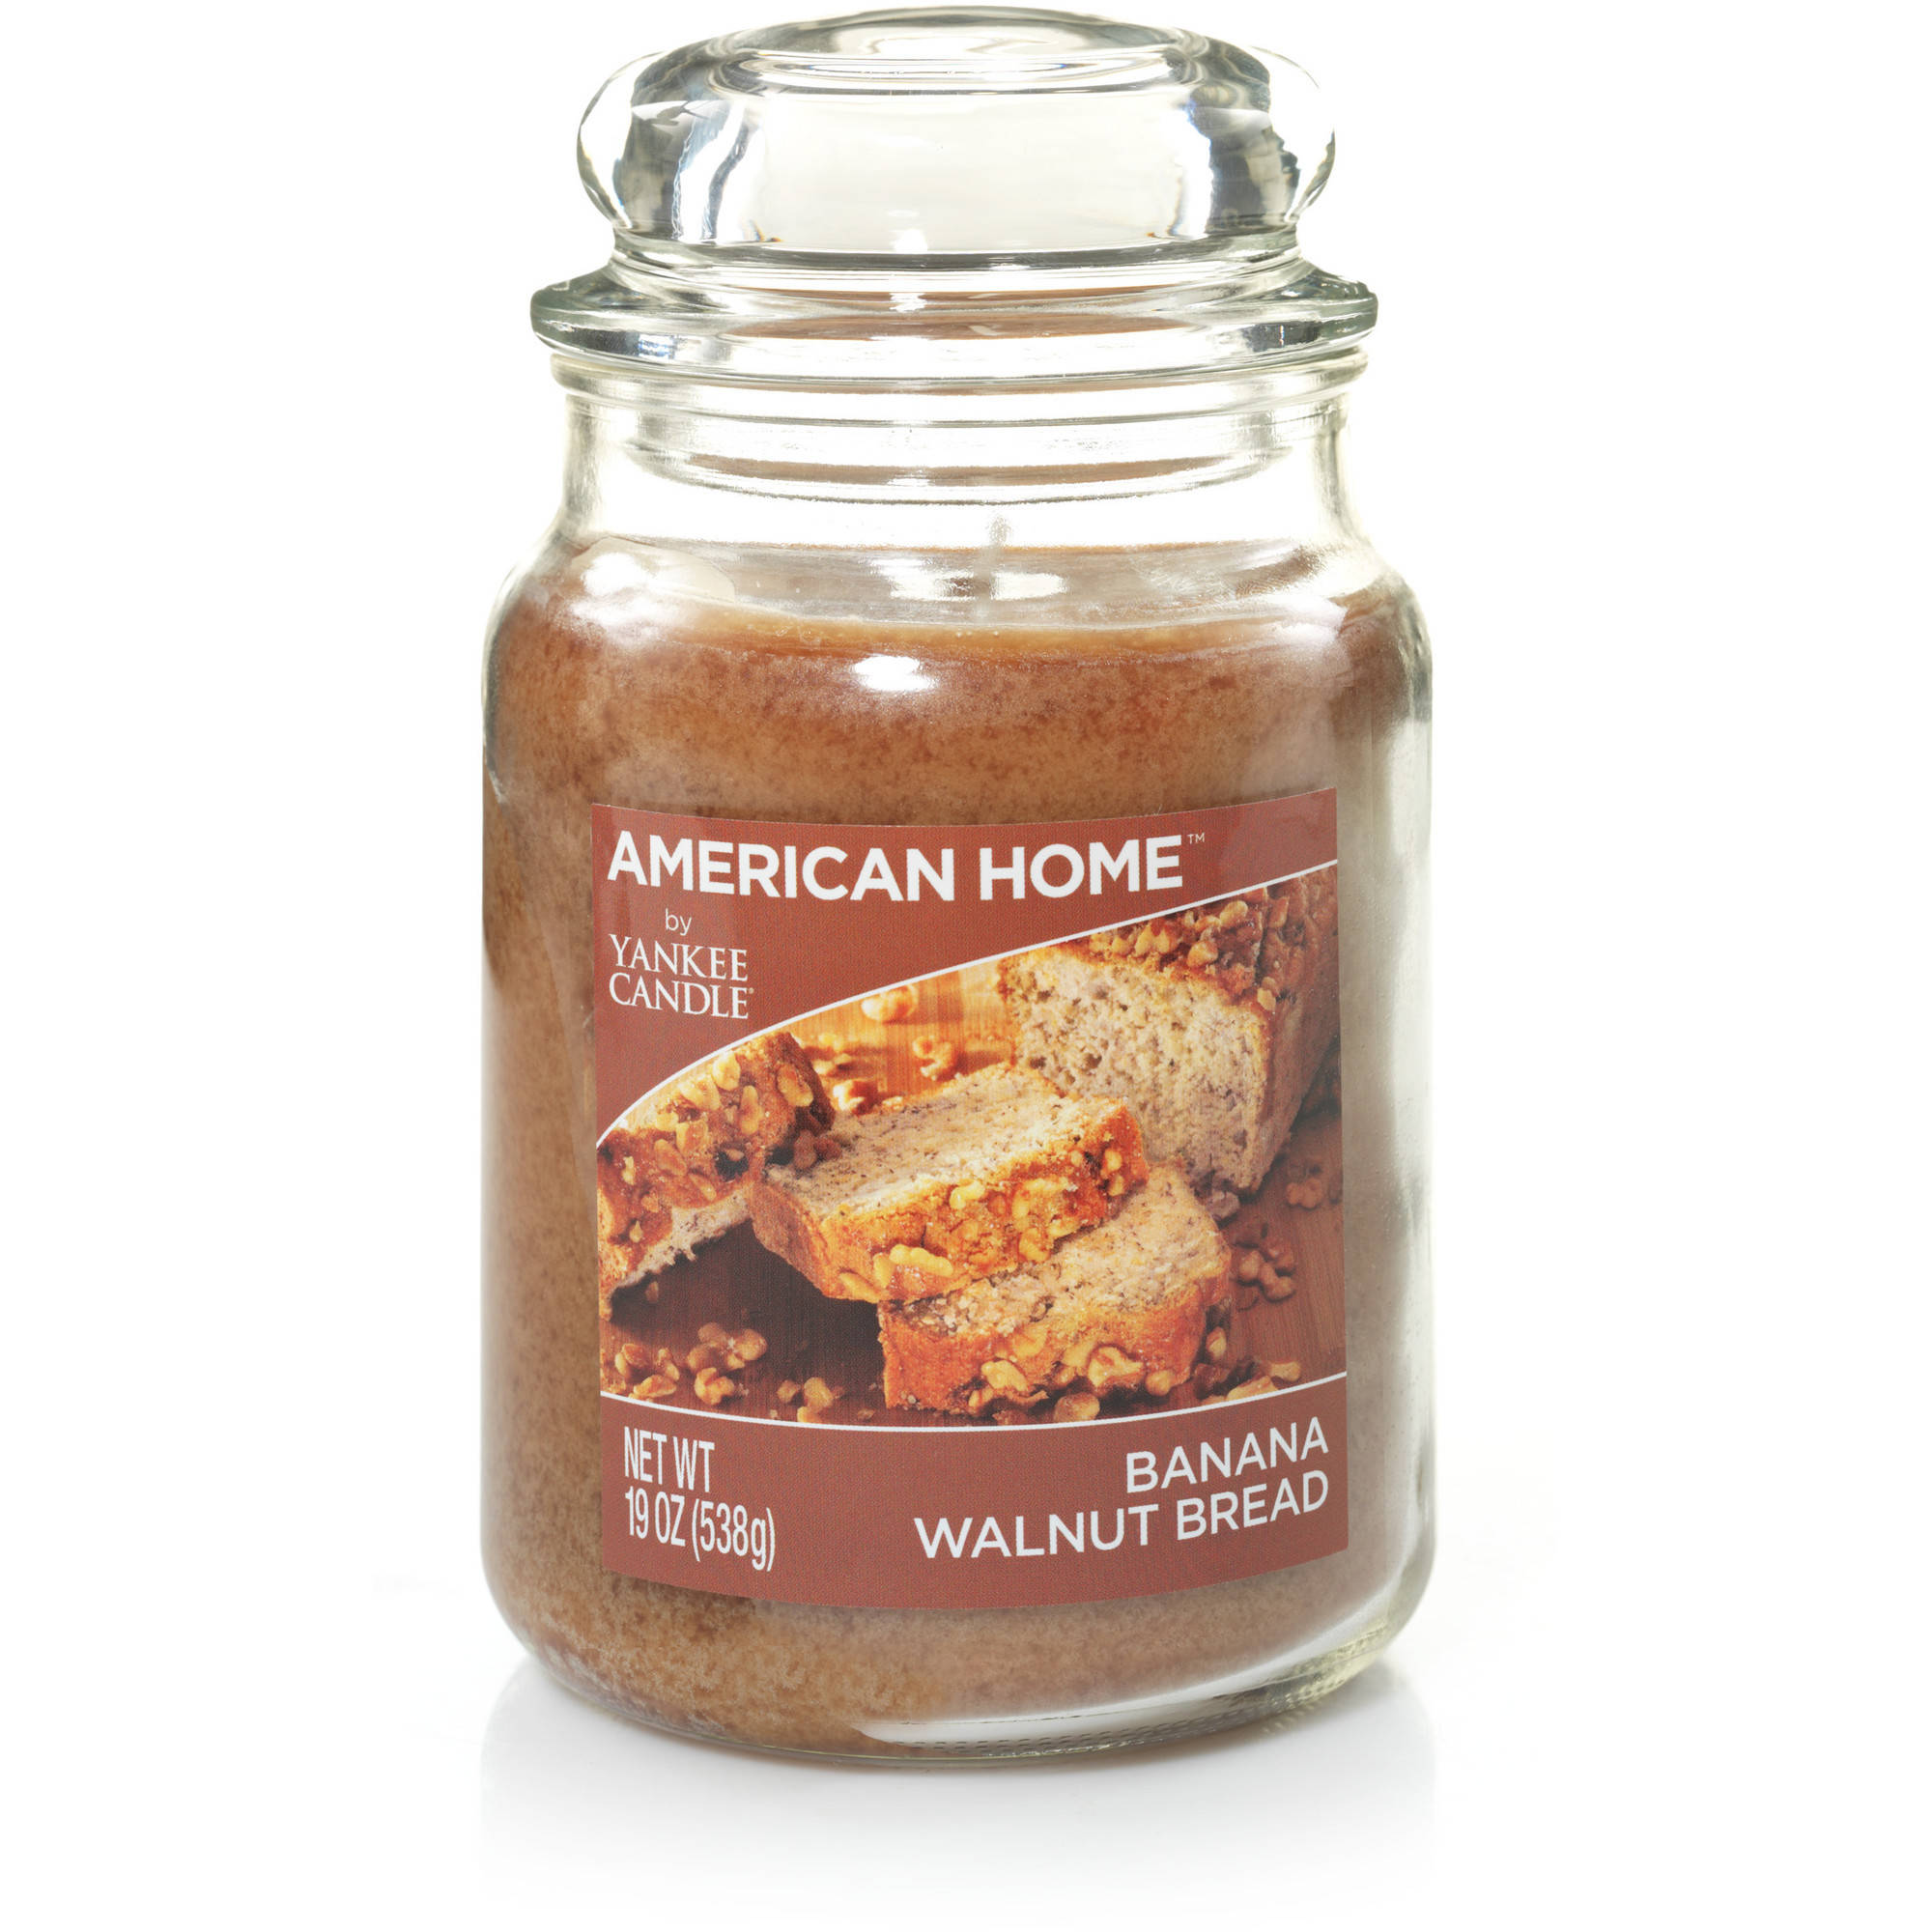 American Home by Yankee Candle Banana Walnut Bread, 19 oz Large Jar